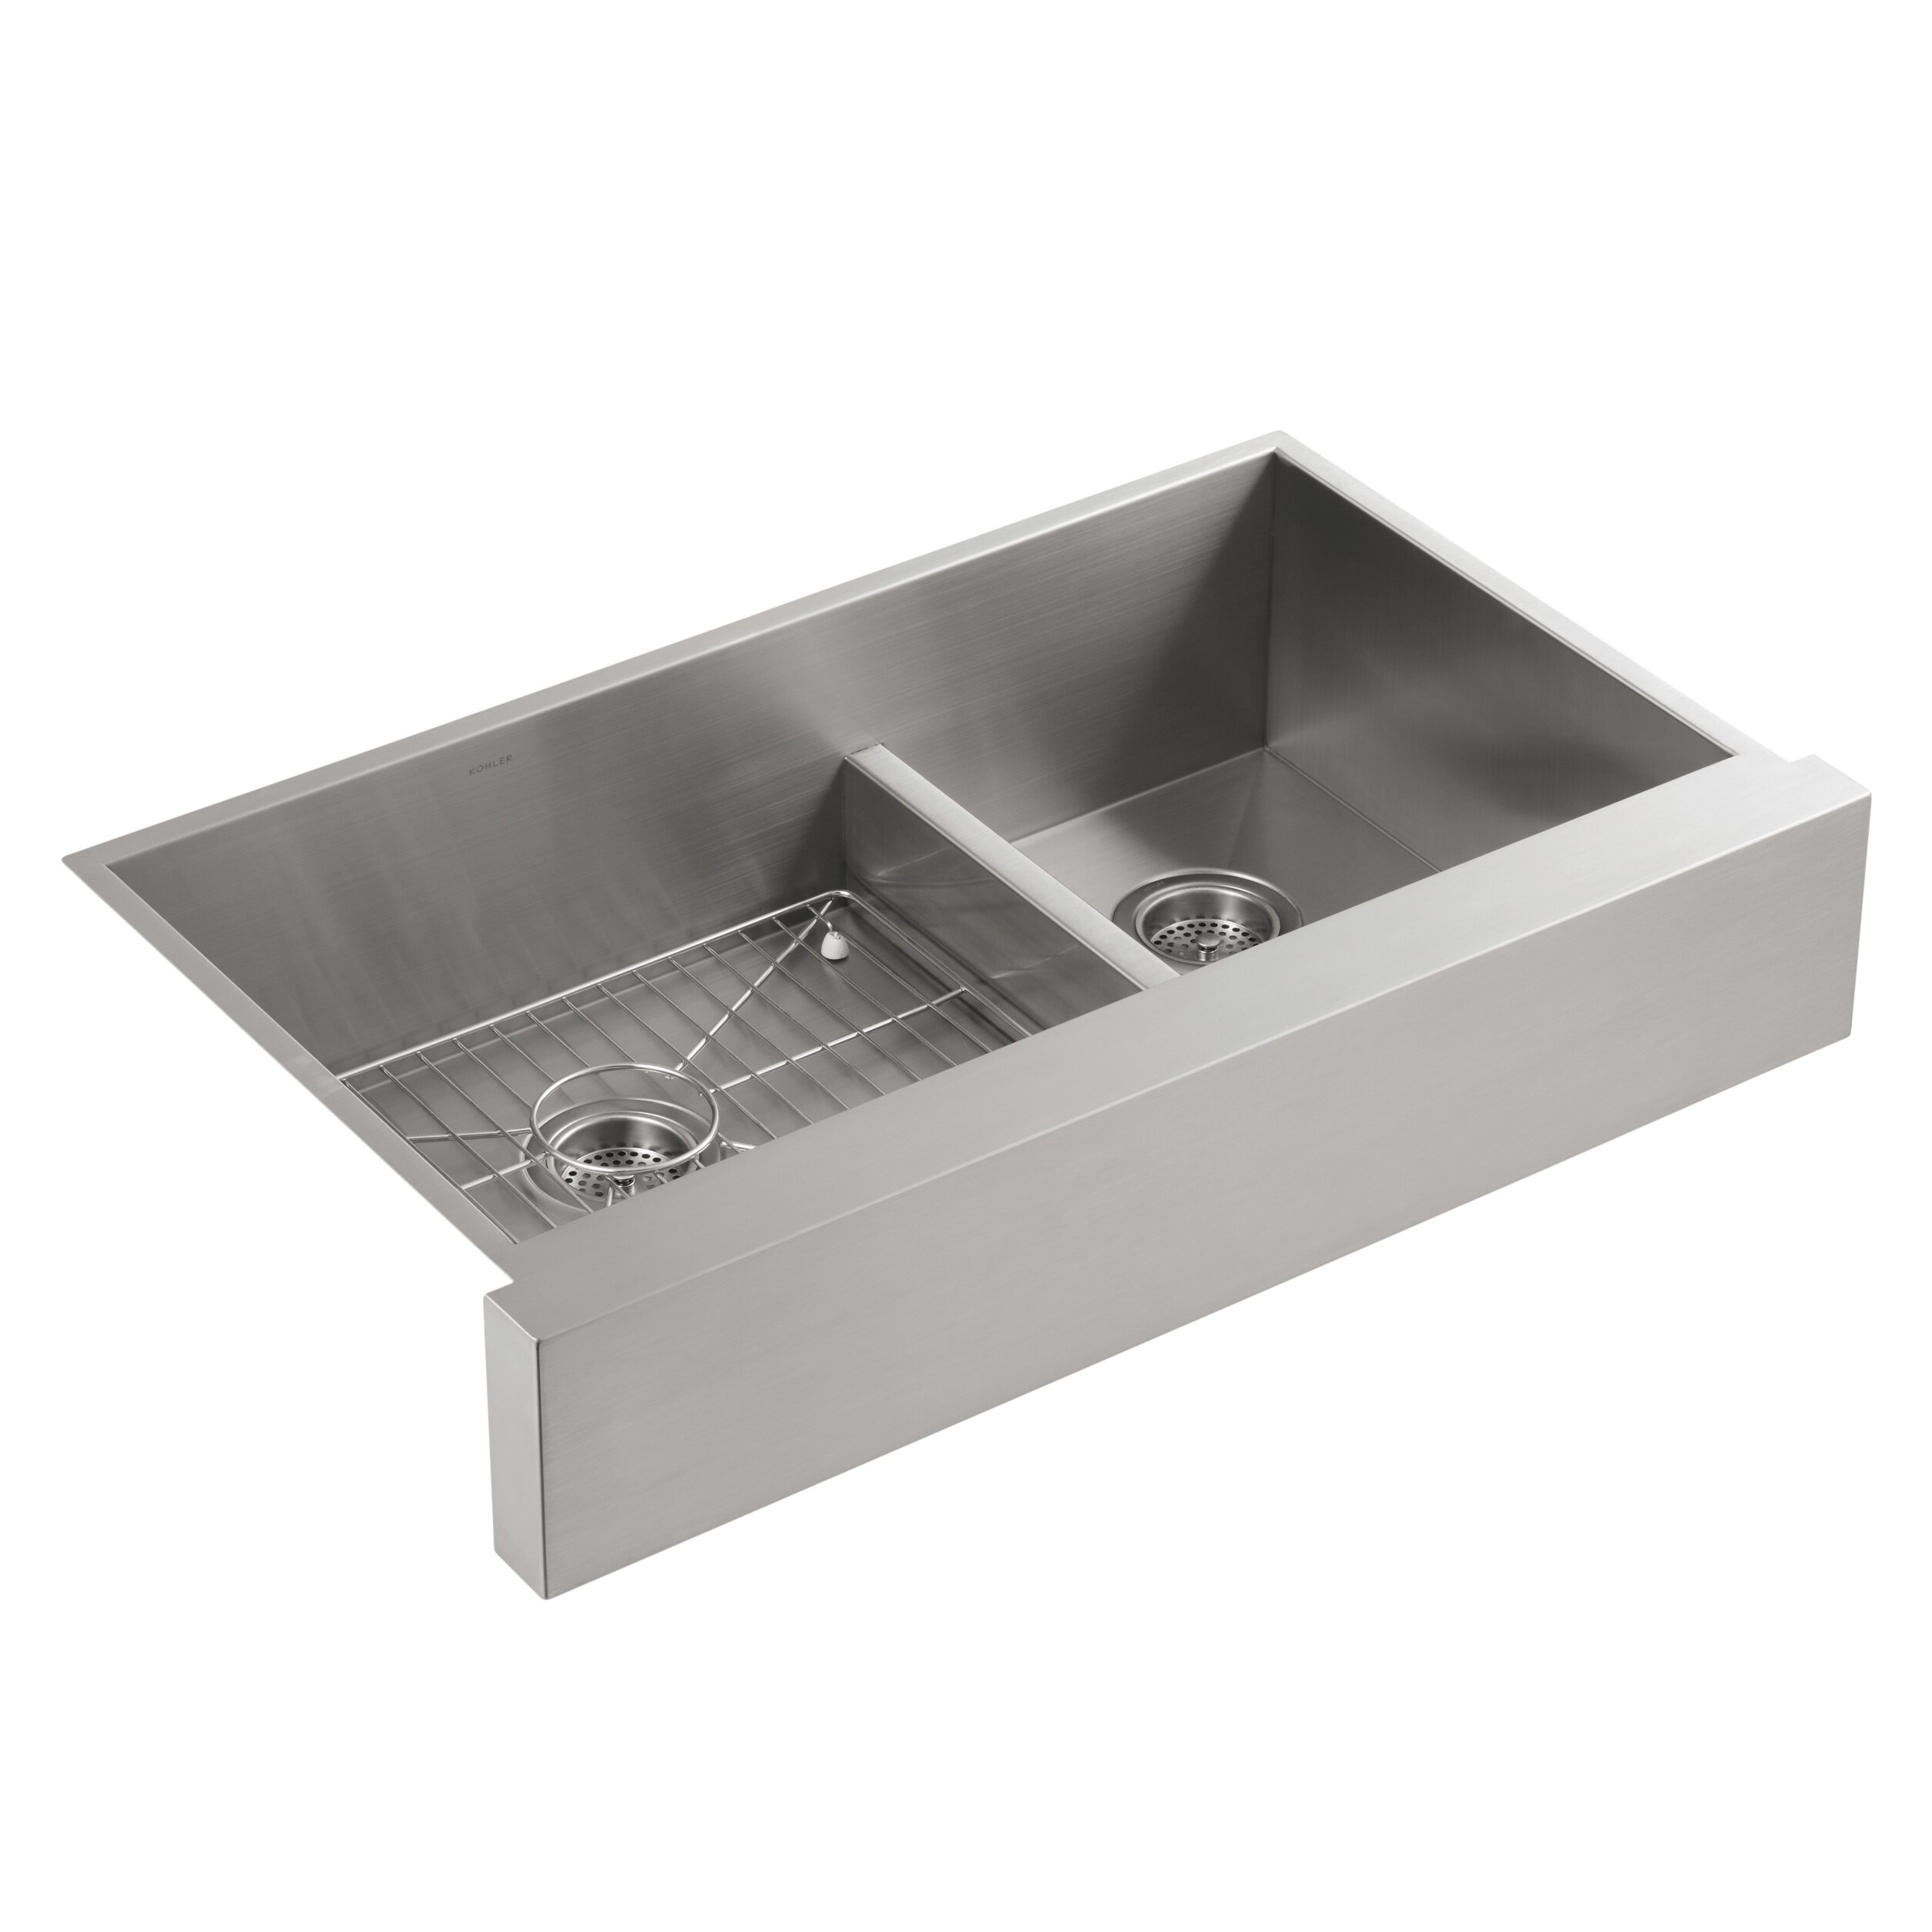 Farmhouse Apron Kitchen Sinks Kohler Vault 355 X 2125 Farmhouse Apron Kitchen Sink Reviews